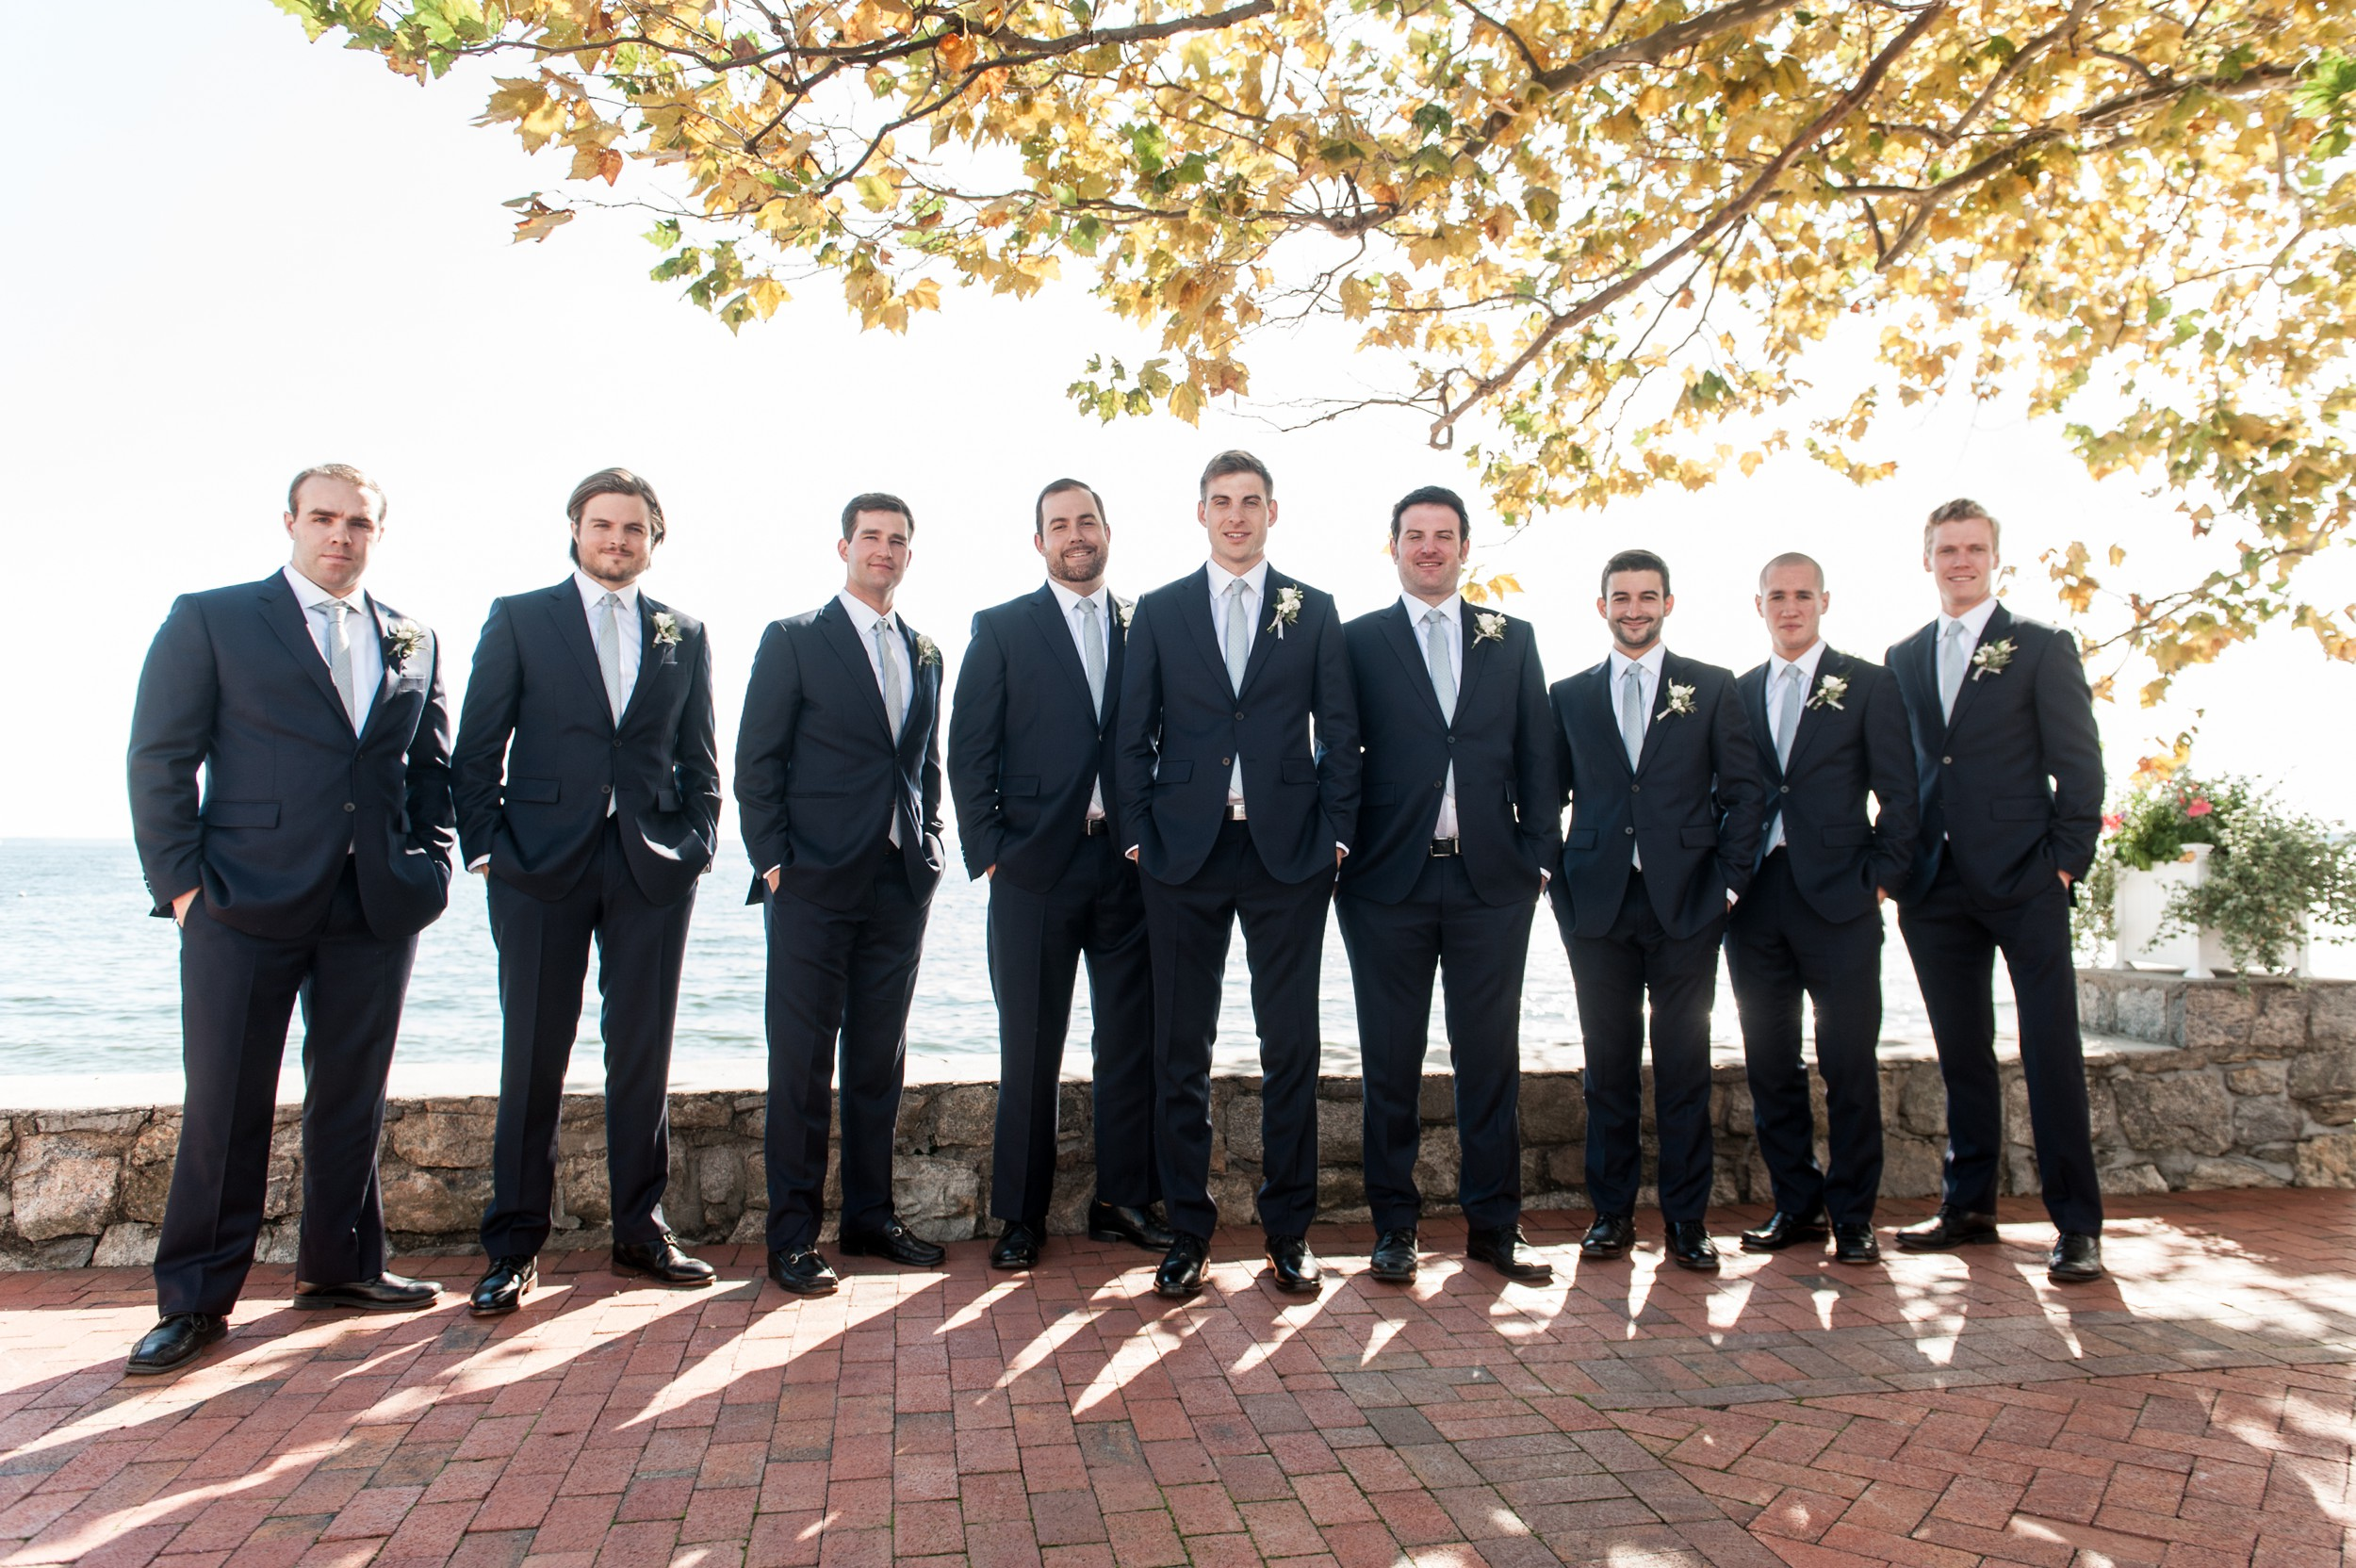 Sunny Wee Burn Beach Club Wedding Darien CT Bridal Party Portraits with Groom and Groomsmen in Navy Suits and Gray Ties